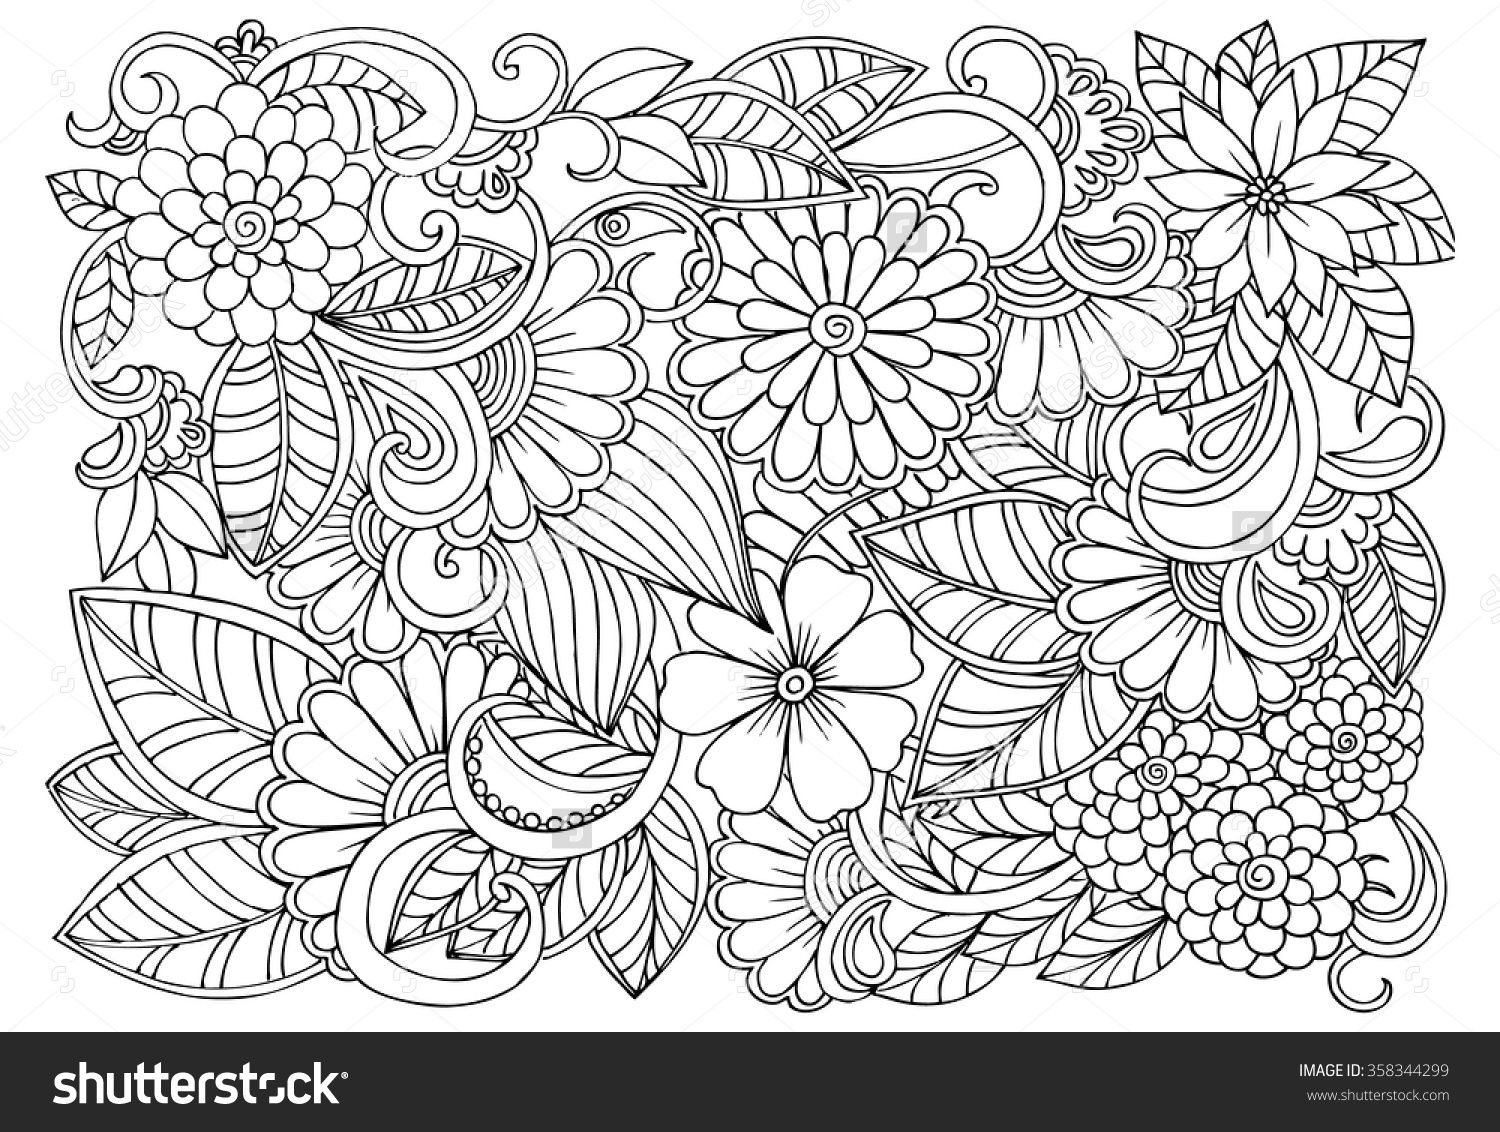 Flower Designs Coloring Pages Doodle Floral Pattern In Black And White Color Print 5 32750